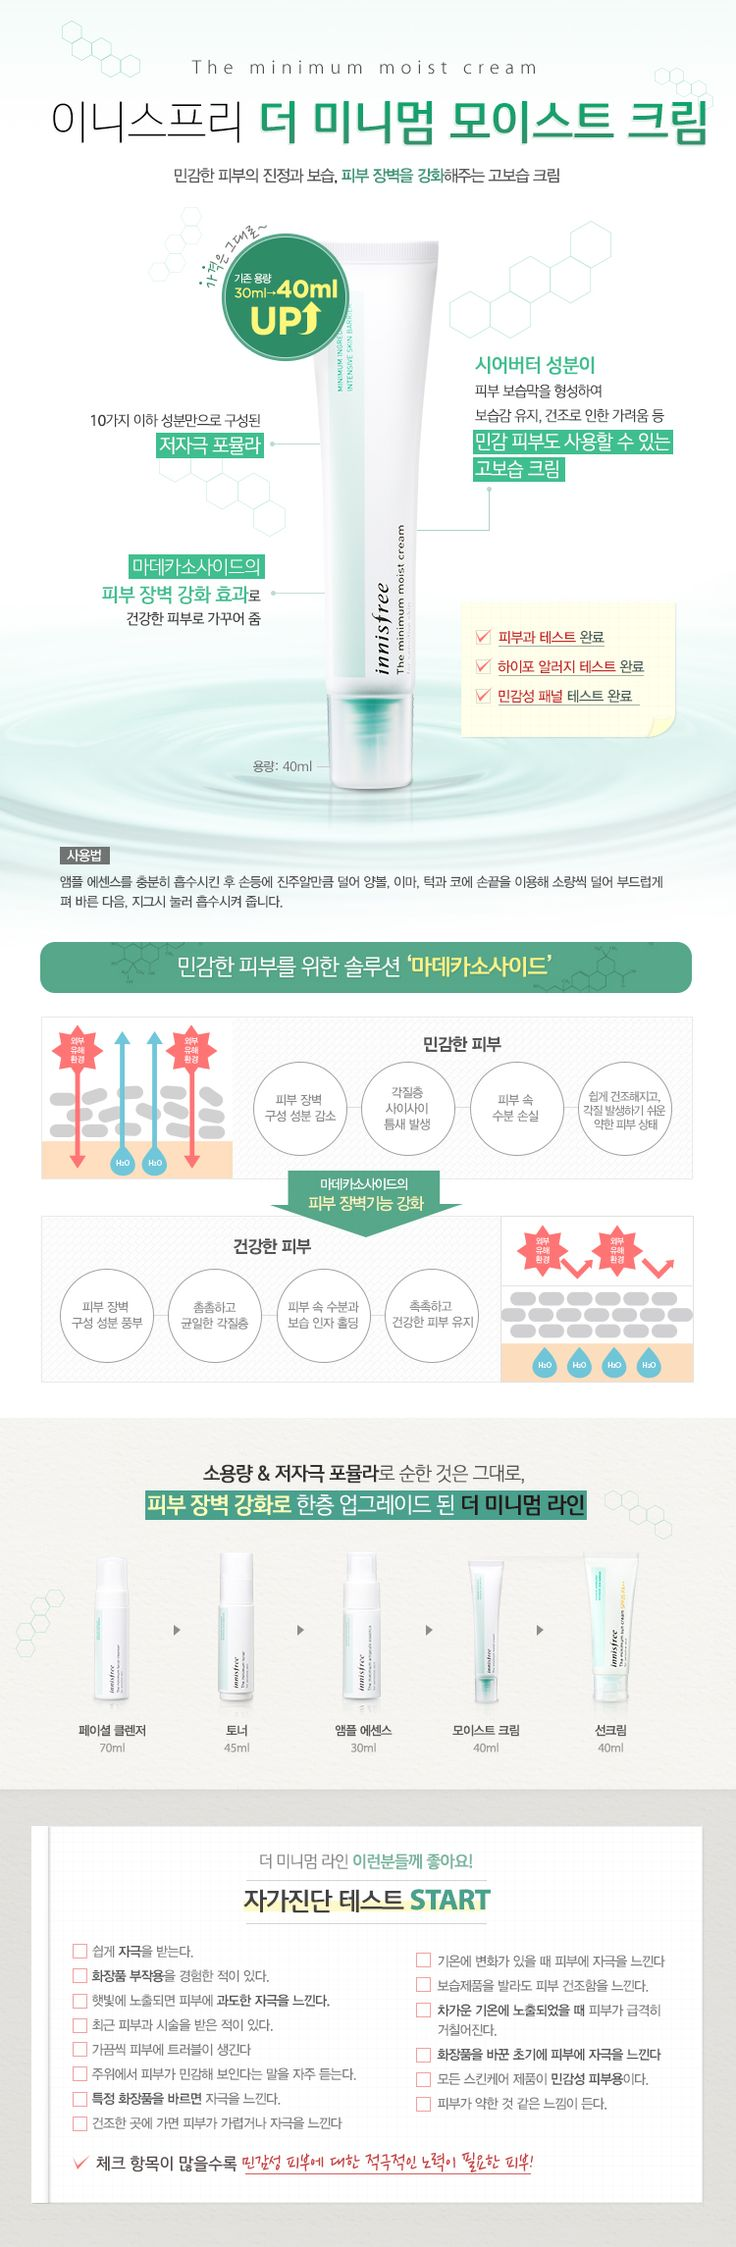 쇼핑하기 > 스킨케어 > 크림 | Natural benefit from Jeju, innisfree